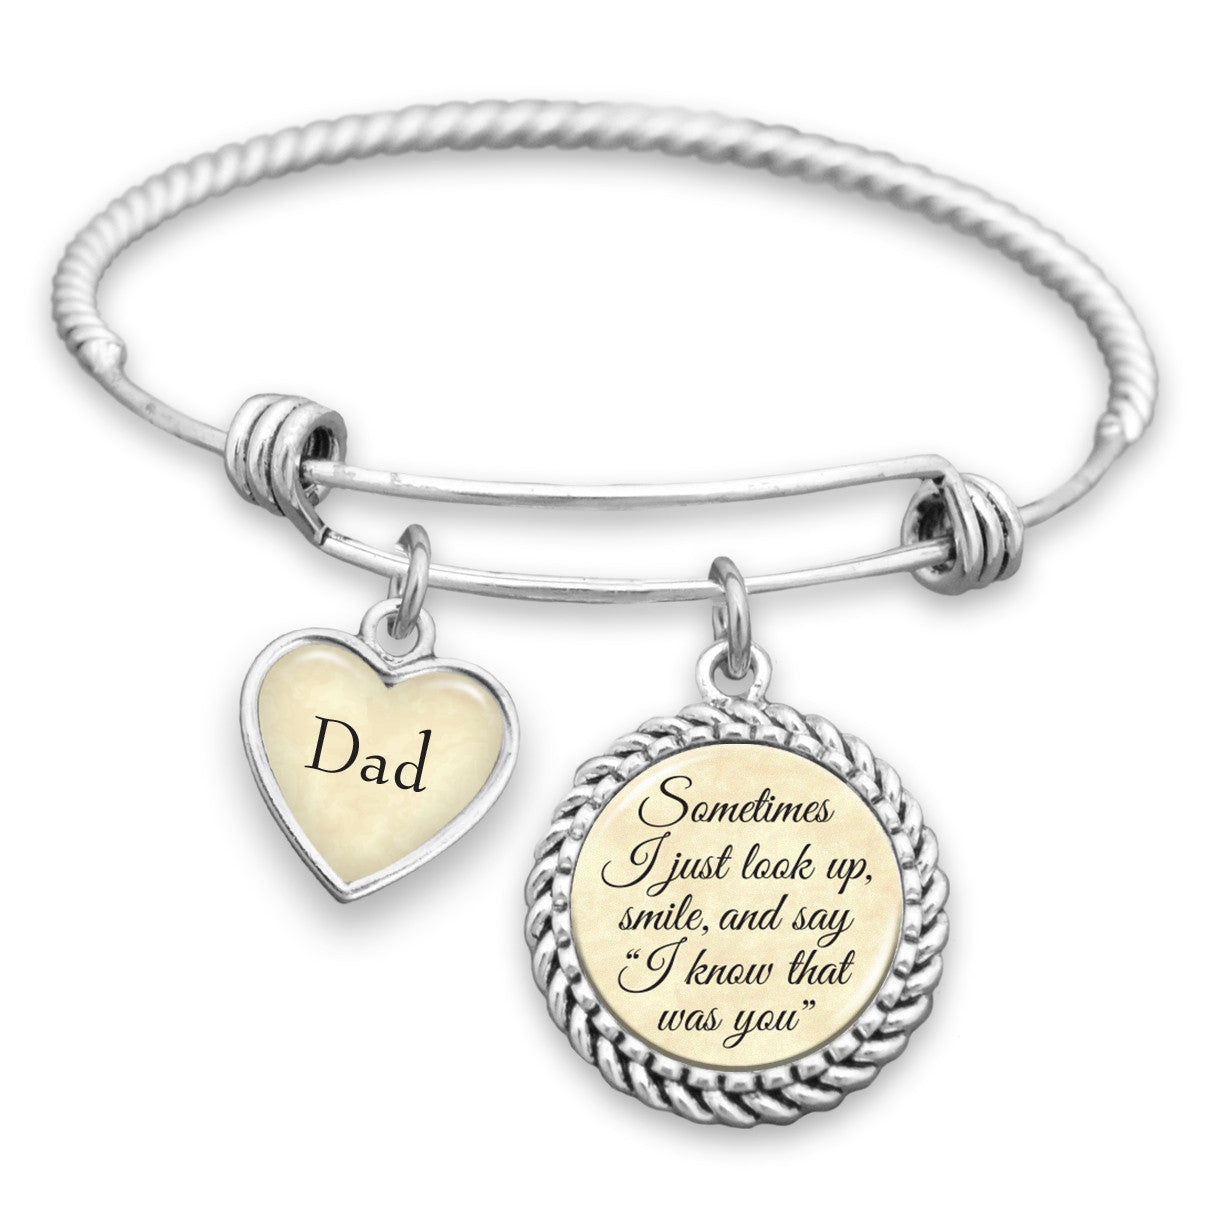 Know That Was You Personalized Name Bracelet